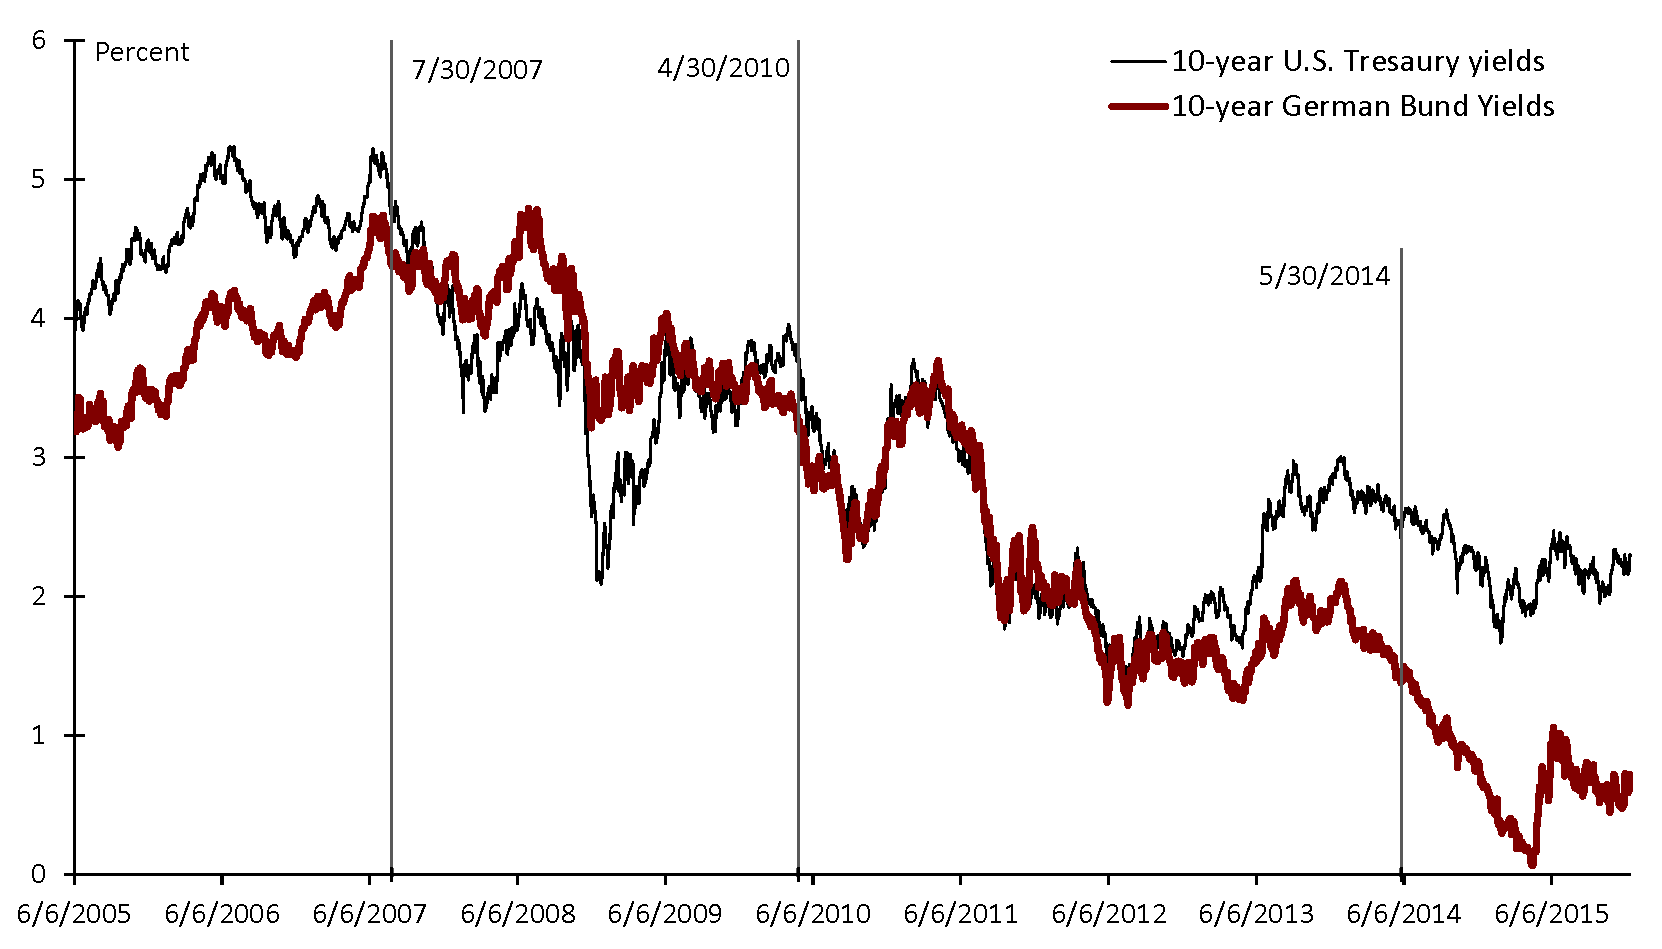 Figure 1: U.S. and Euro-Area 10-Year Sovereign Bond Yields. See accessible link for data description.